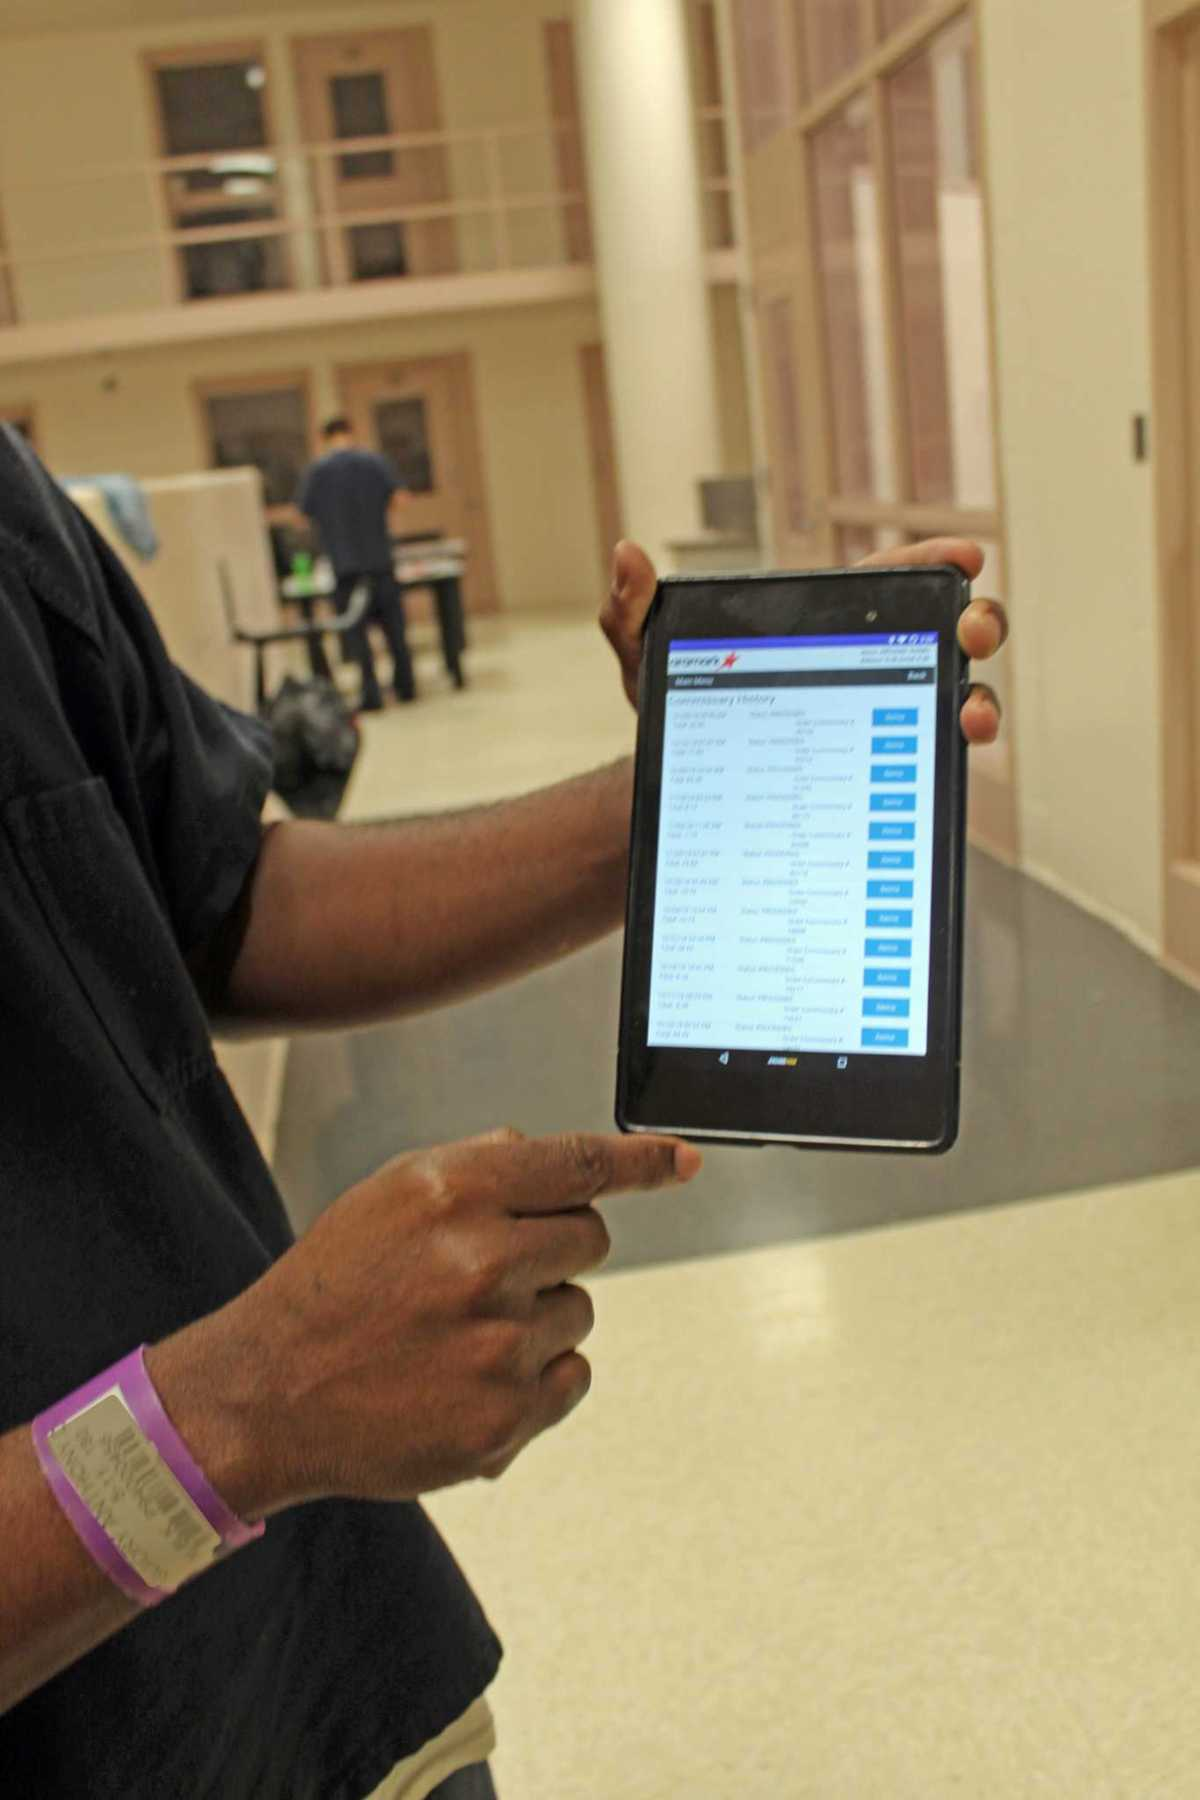 Fort Bend County Sheriff's Dept. pilots computer tablet program for inmates